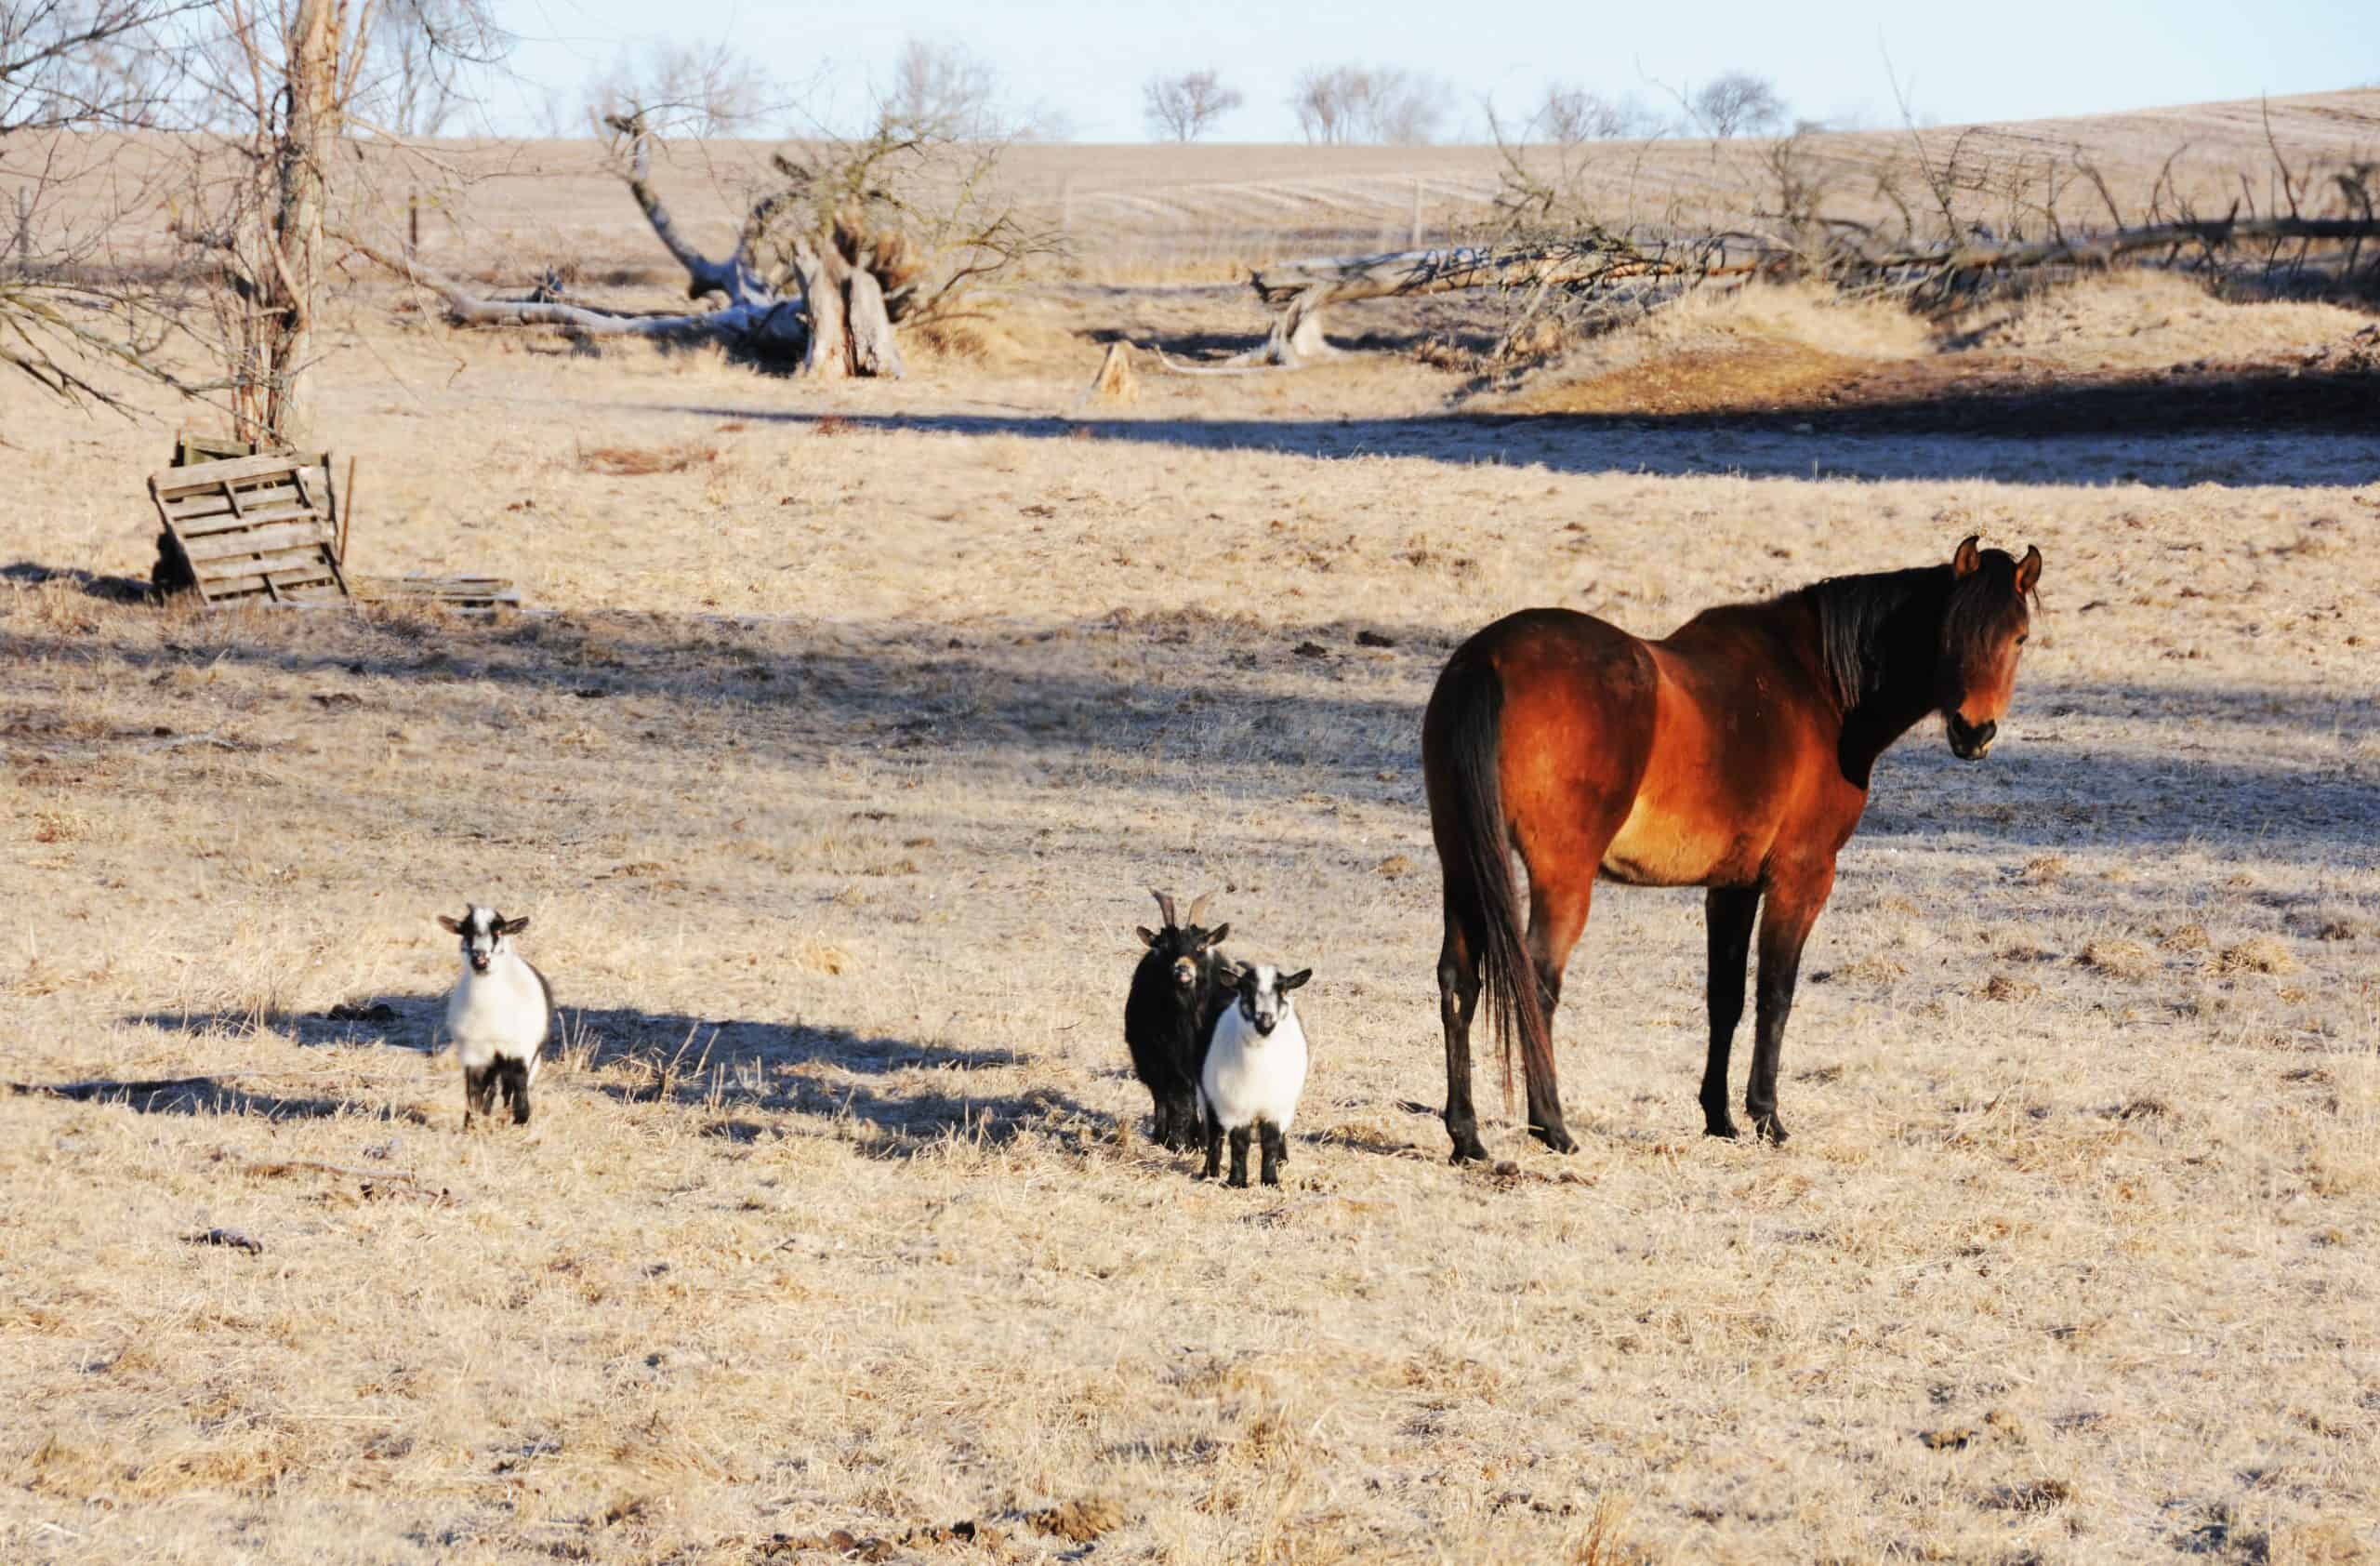 Brown horse in dry pasture with three goats.